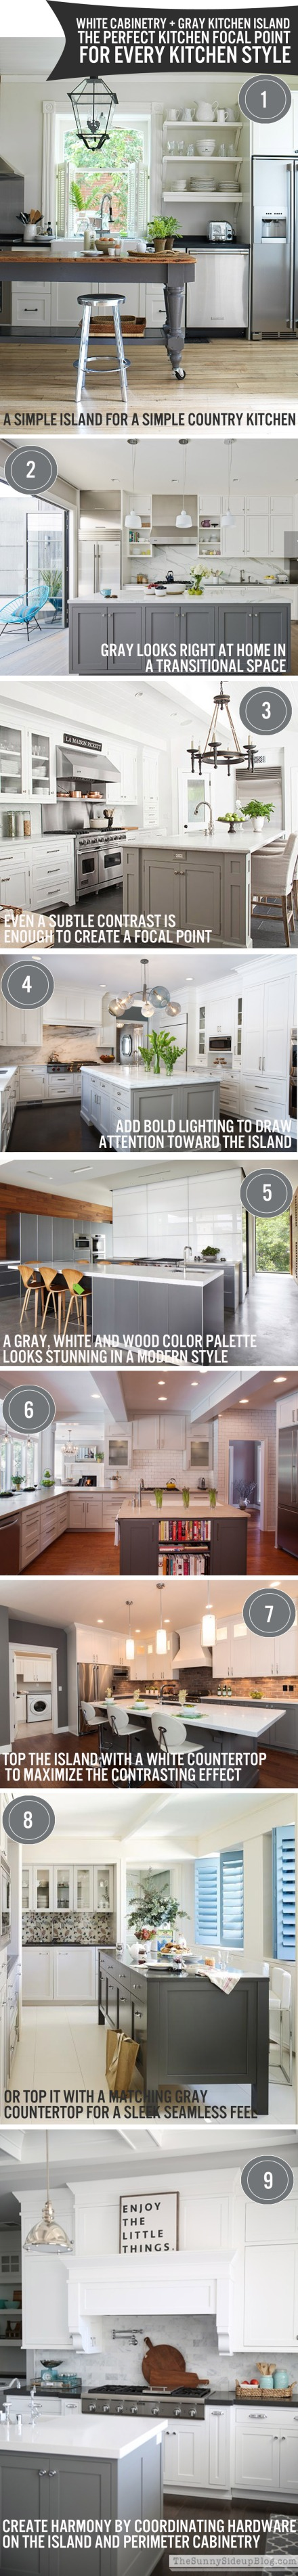 The Perfect Focal Point: A Gray Kitchen Island | www.theanatomyofdesign.com